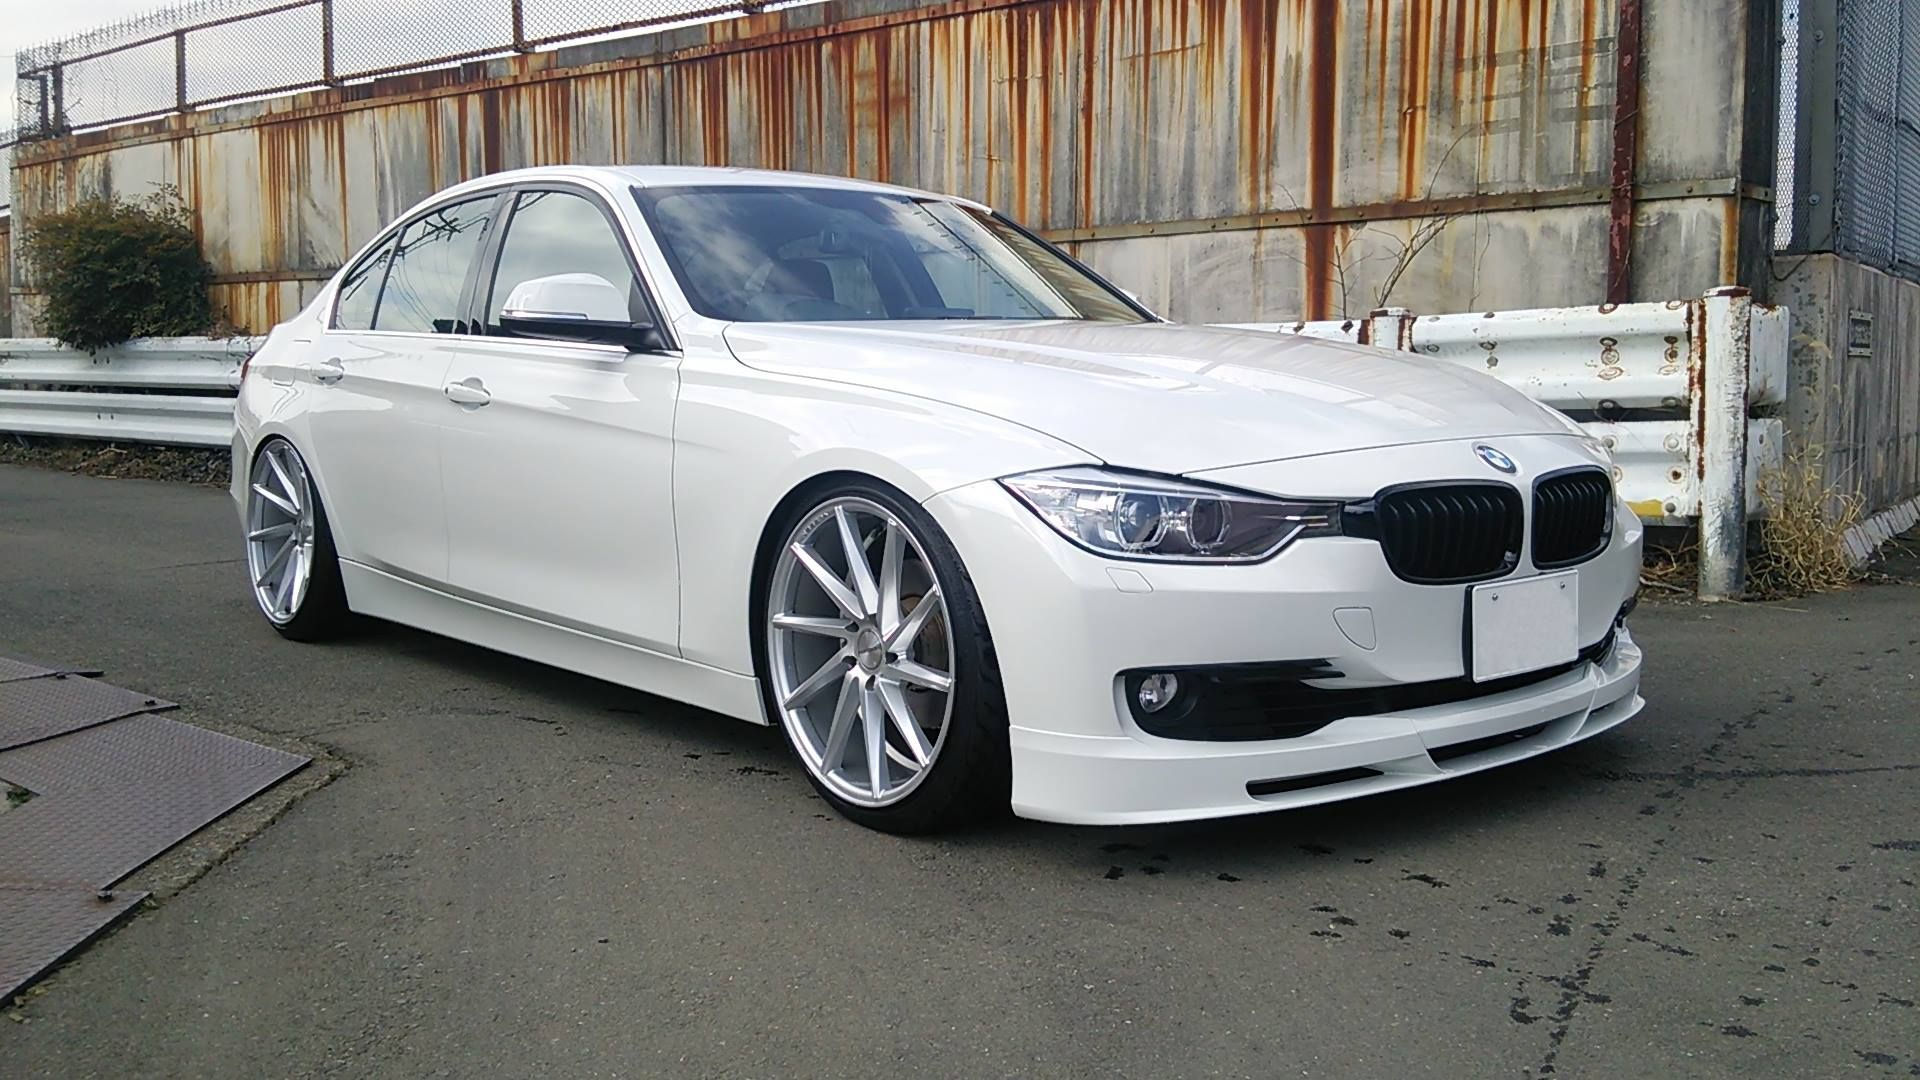 bmw f30 335i sedan white angel vossen wheels. Black Bedroom Furniture Sets. Home Design Ideas